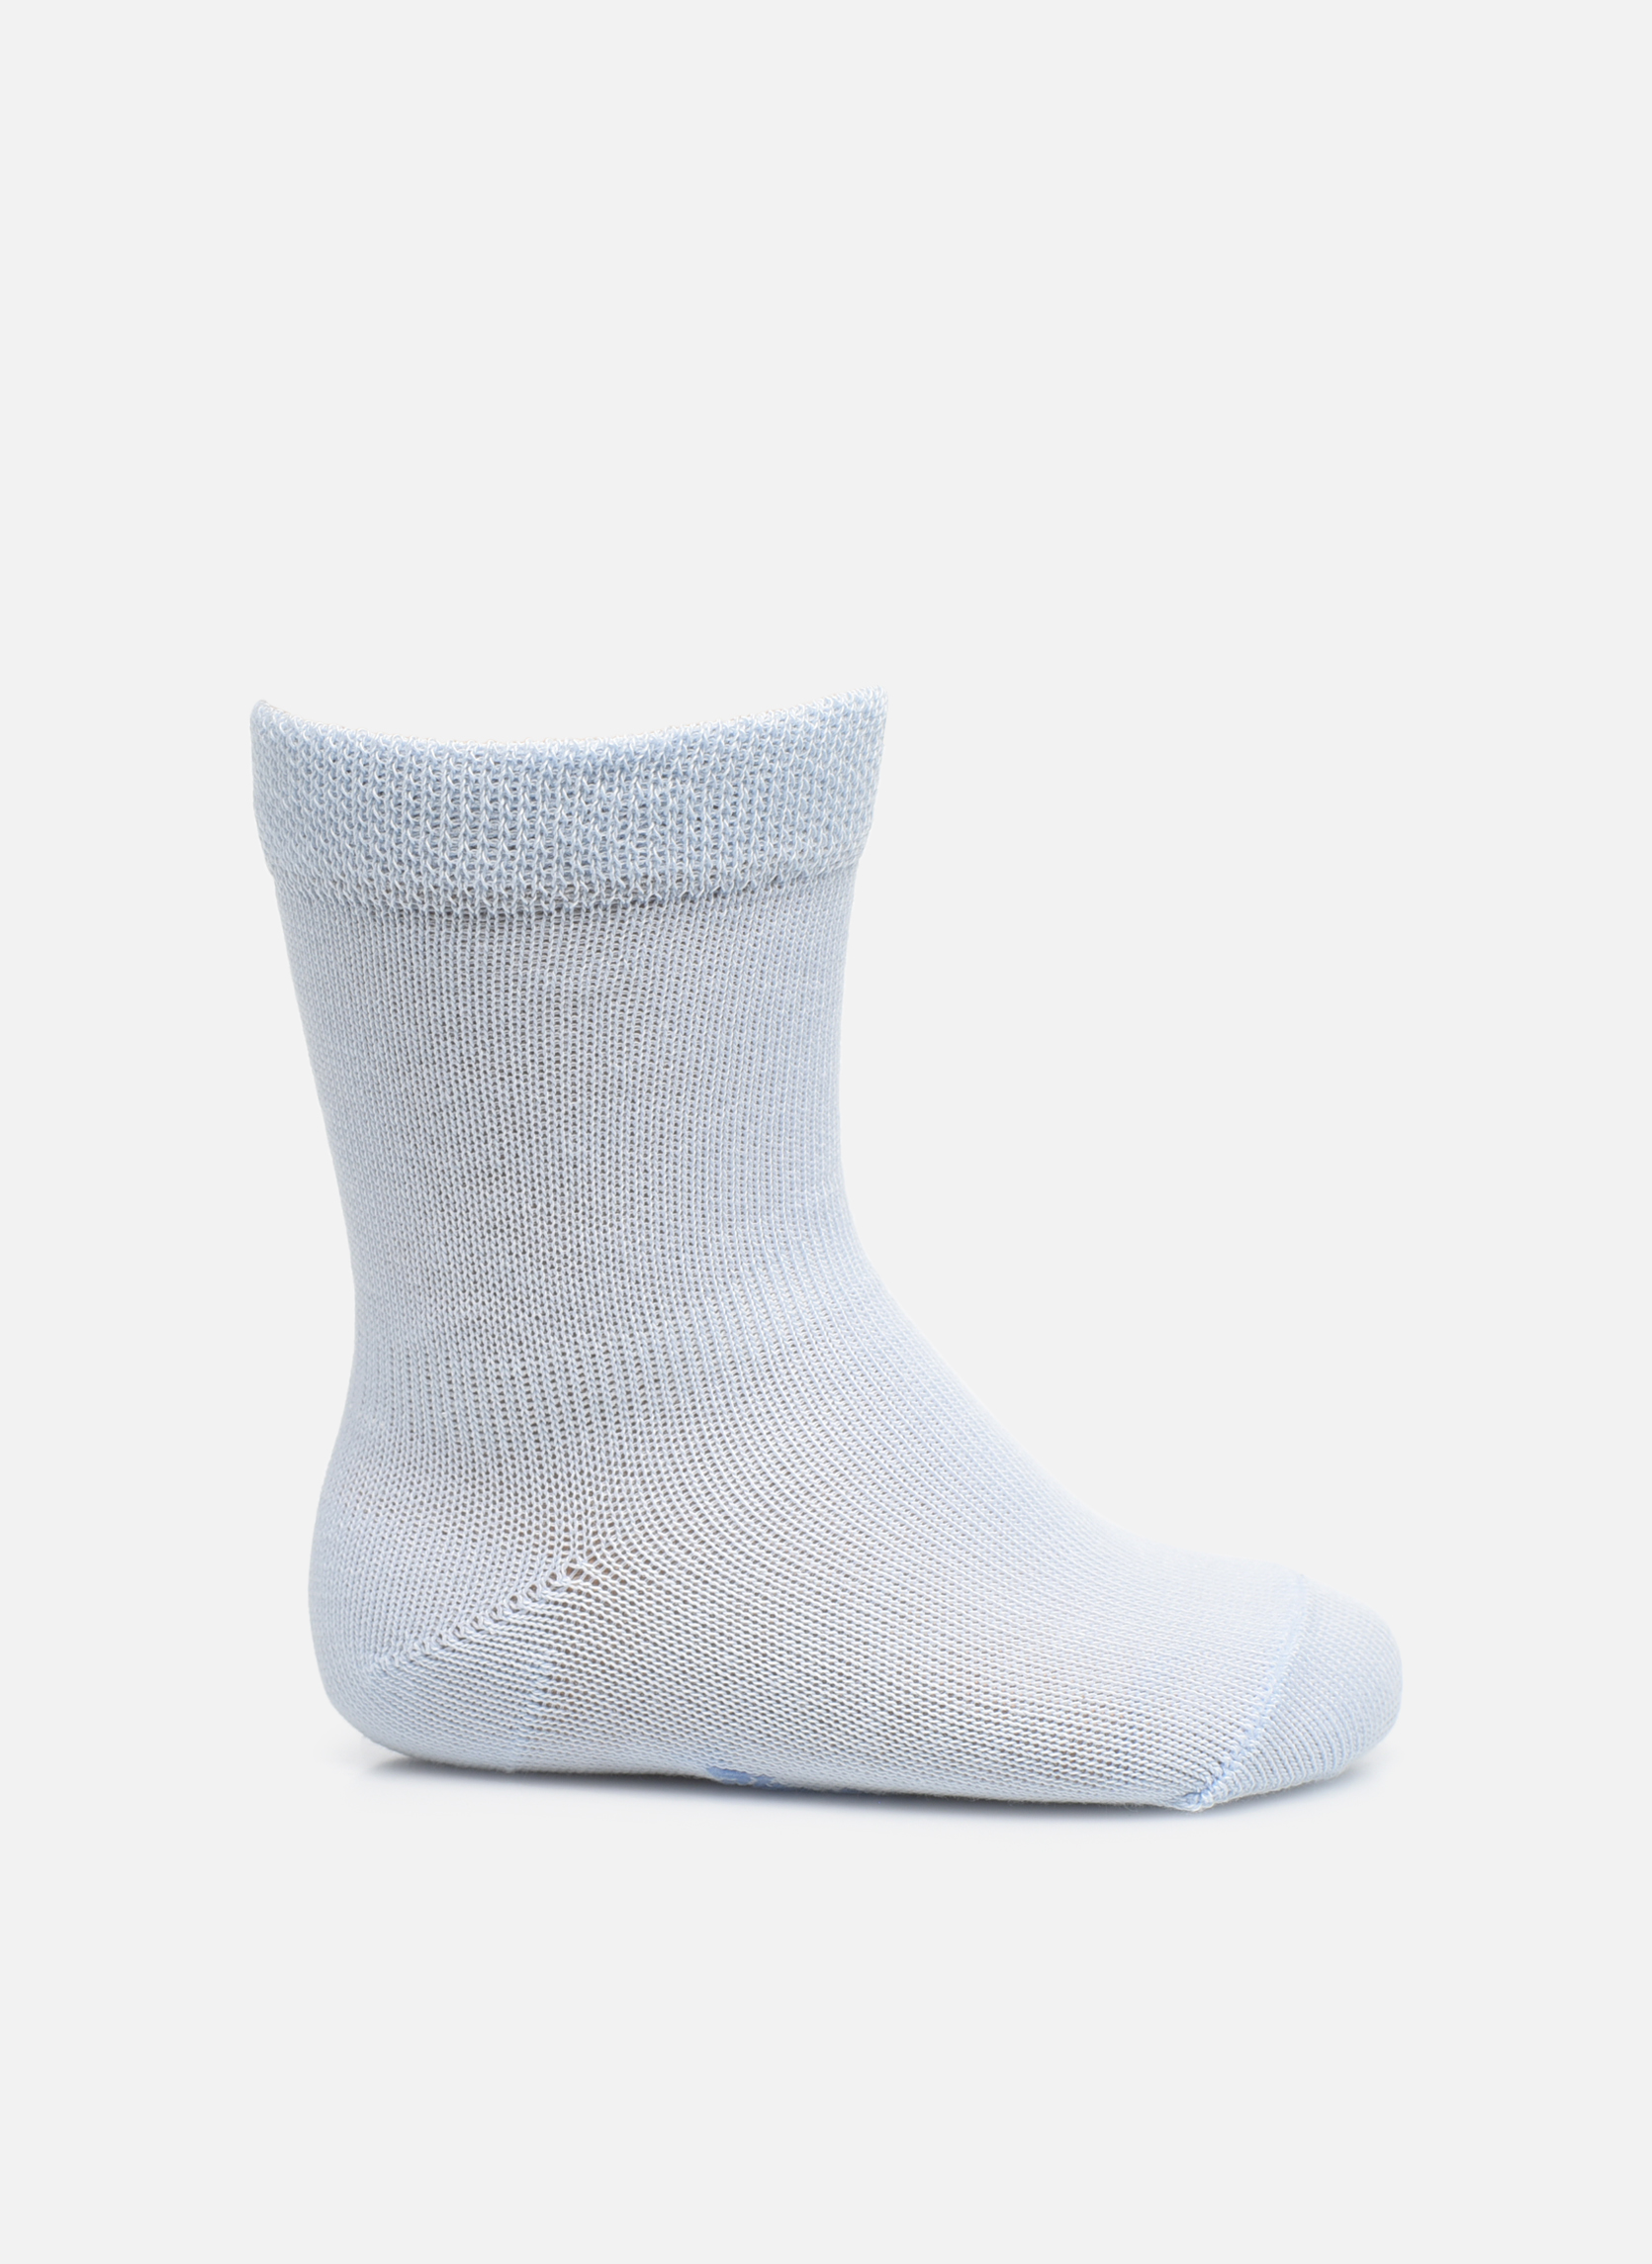 Socken SENSITIVE 6250 bleu clair